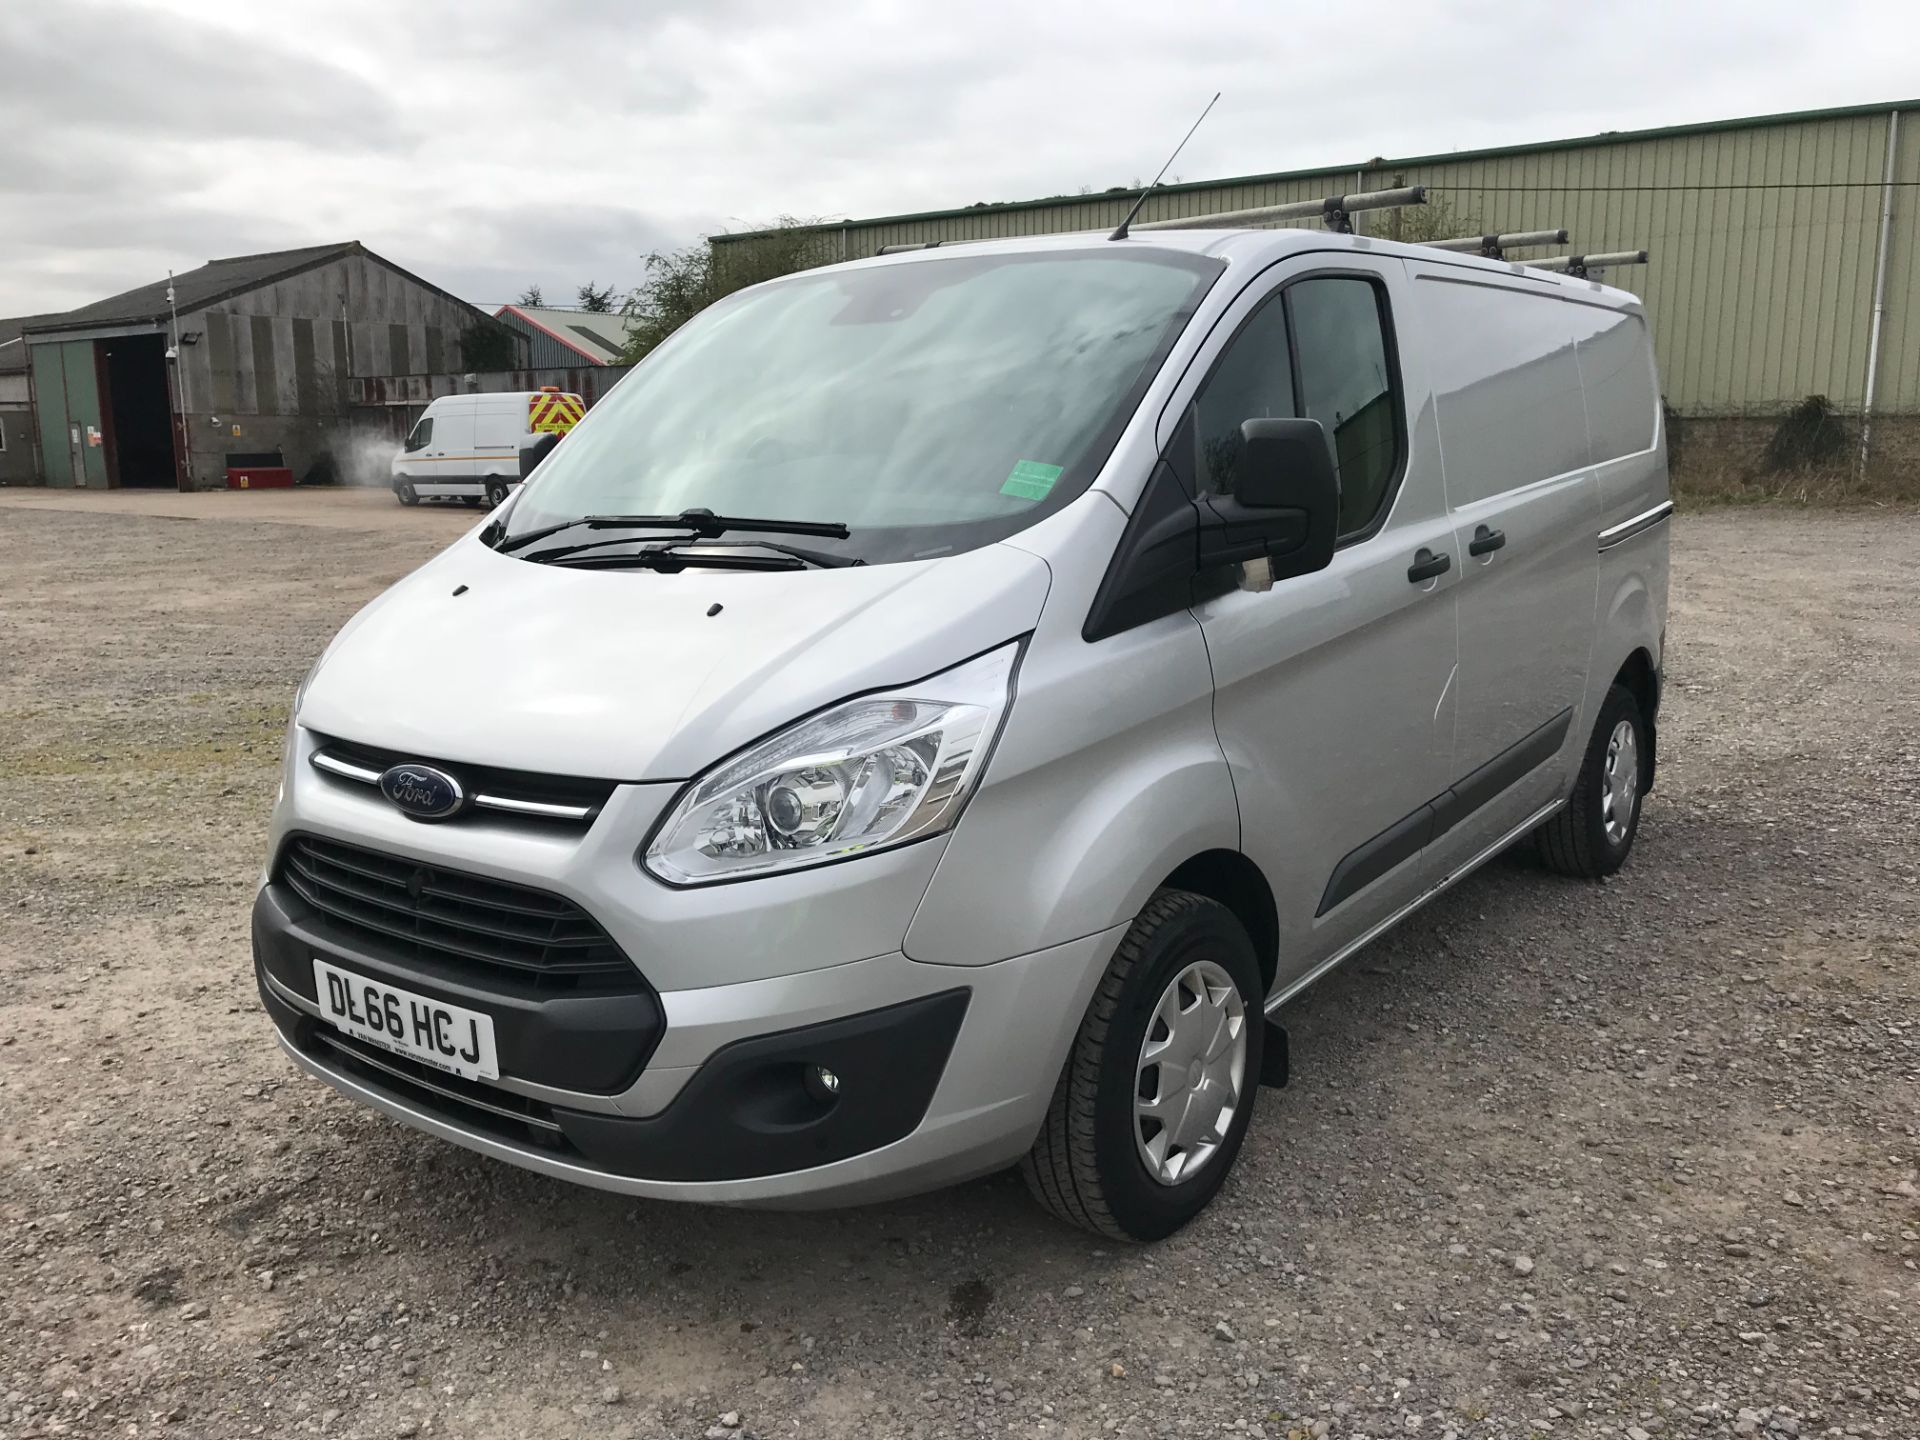 2016 Ford Transit Custom 270 L1 DIESEL FWD 2.0 TDCI 130PS LOW ROOF TREND VAN EURO 6 (DL66HCJ) Image 3